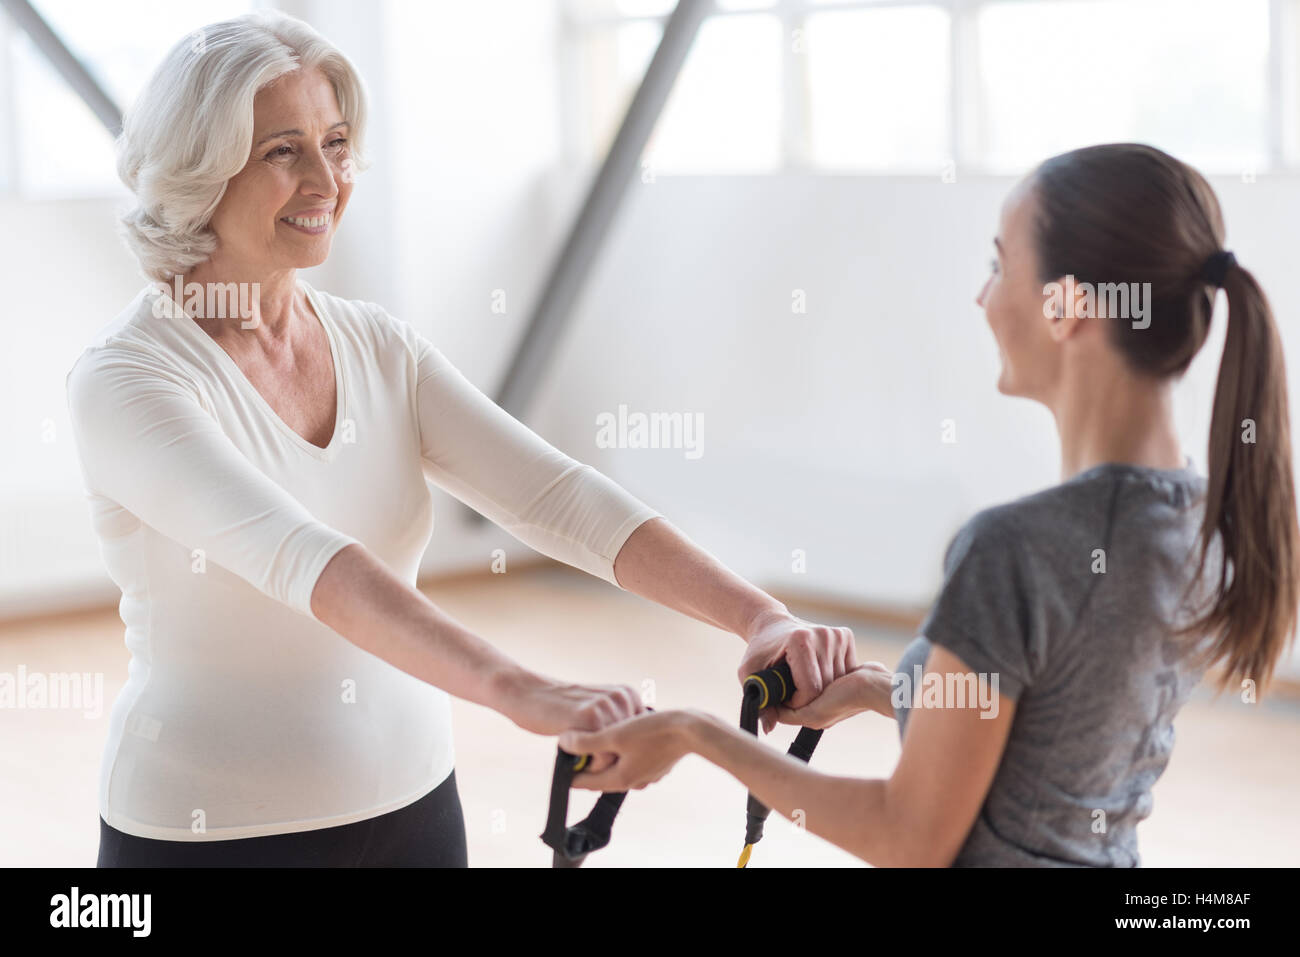 Nice hard working woman using special sports equipment - Stock Image